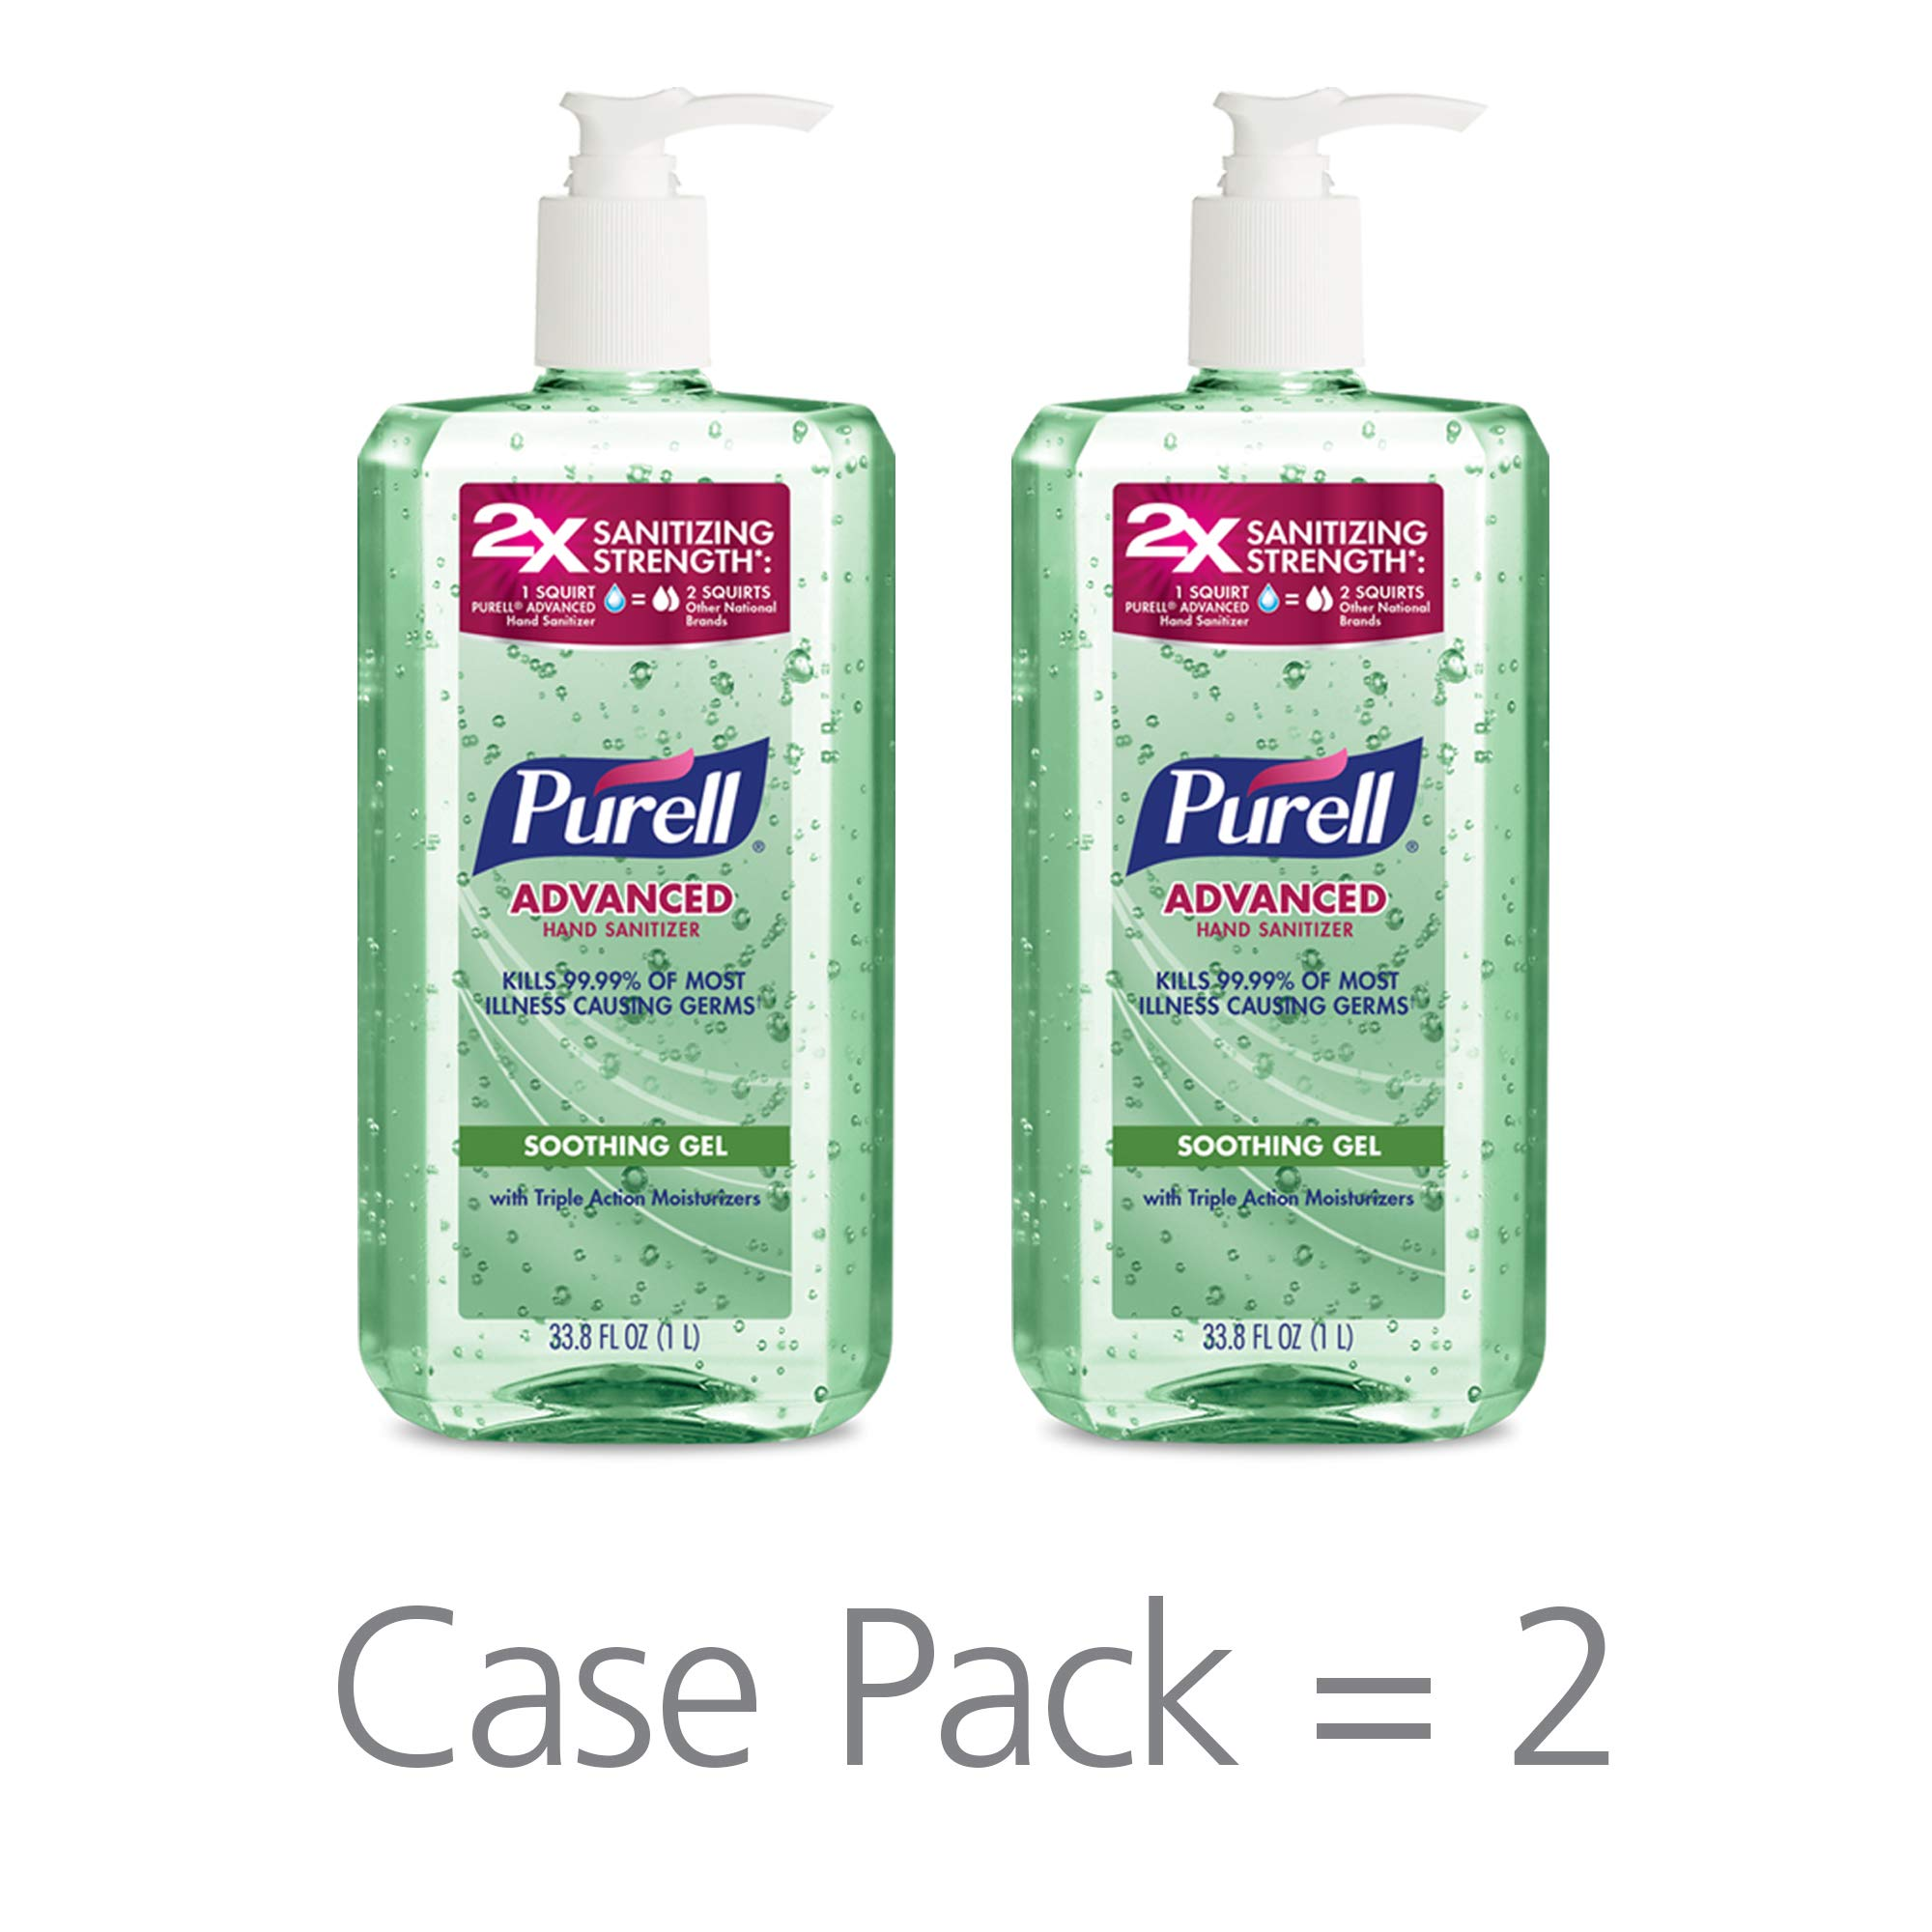 Purell Advanced Hand Sanitizer Soothing Gel For The Workplace